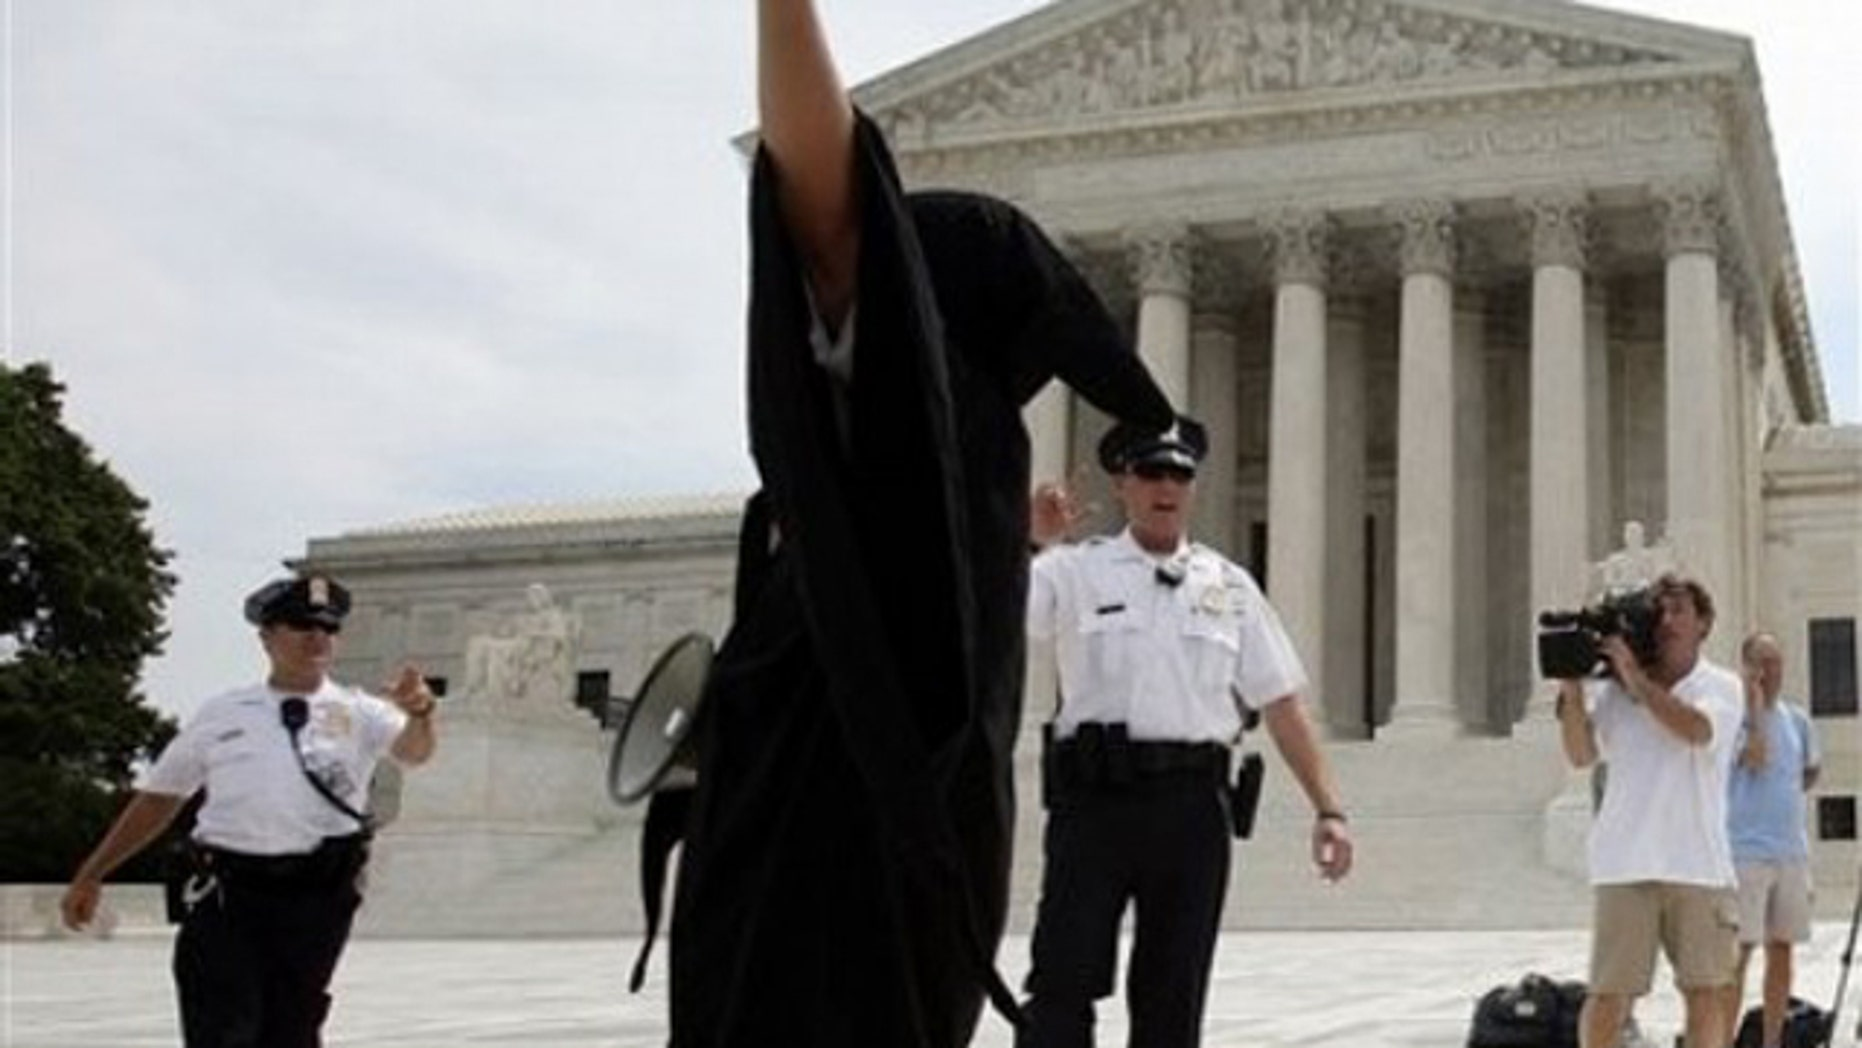 Anti-abortion protesters demonstrate in front of the Supreme Count in Washington, Monday, June 28, 2010. (AP)